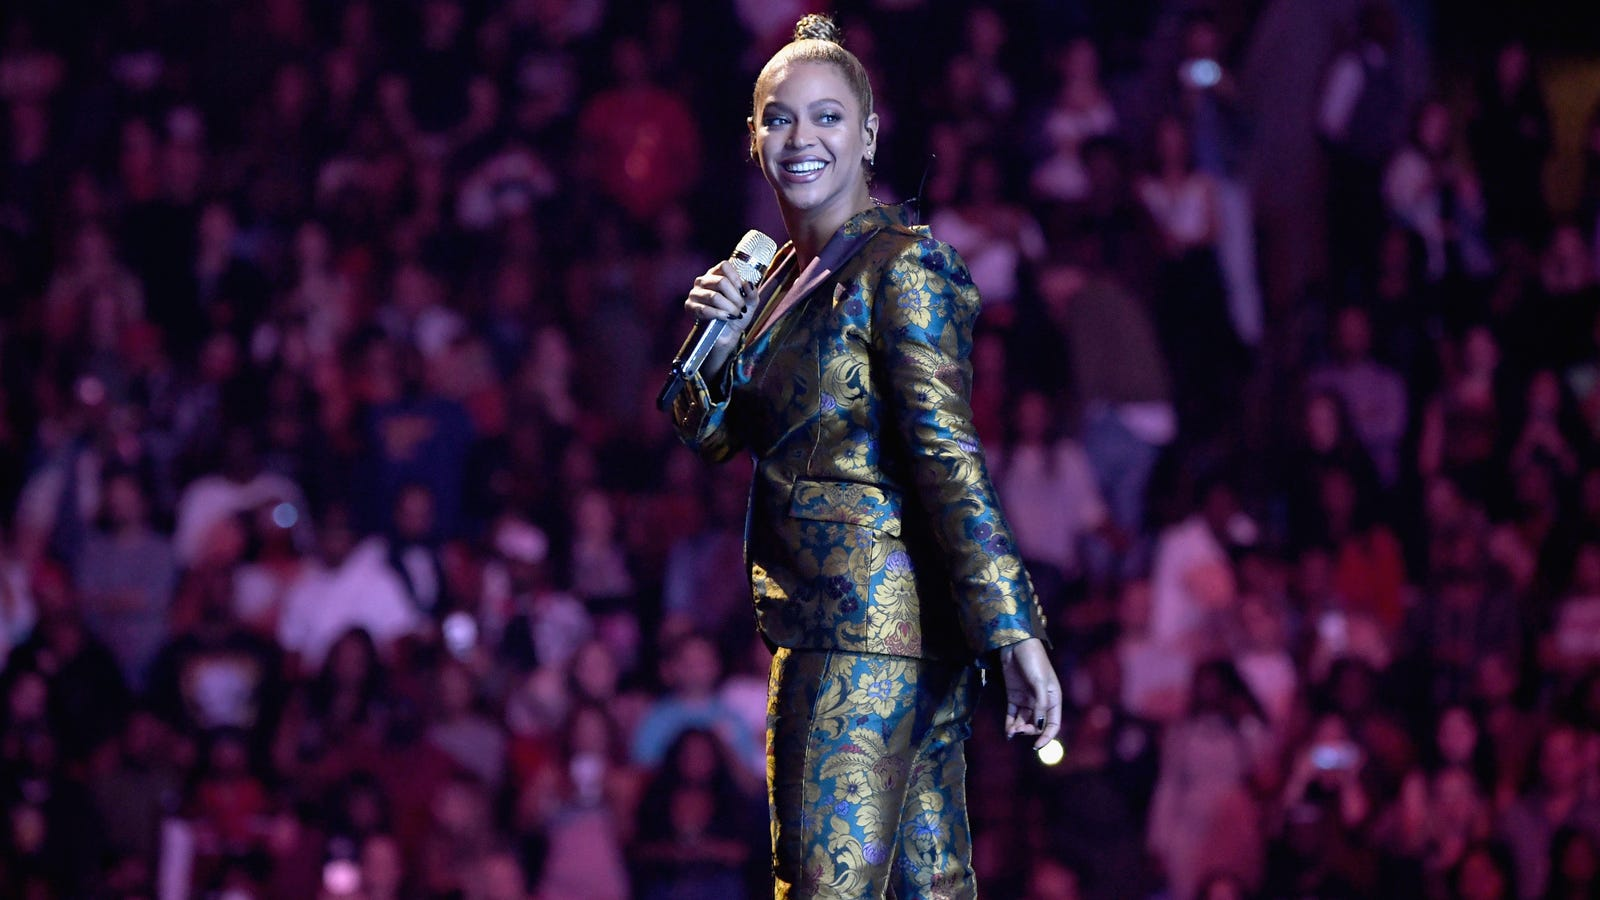 QnA VBage Beyonce.com Lawsuit Reminds Us How Shitty the Web Is for Users With Visual Impairment